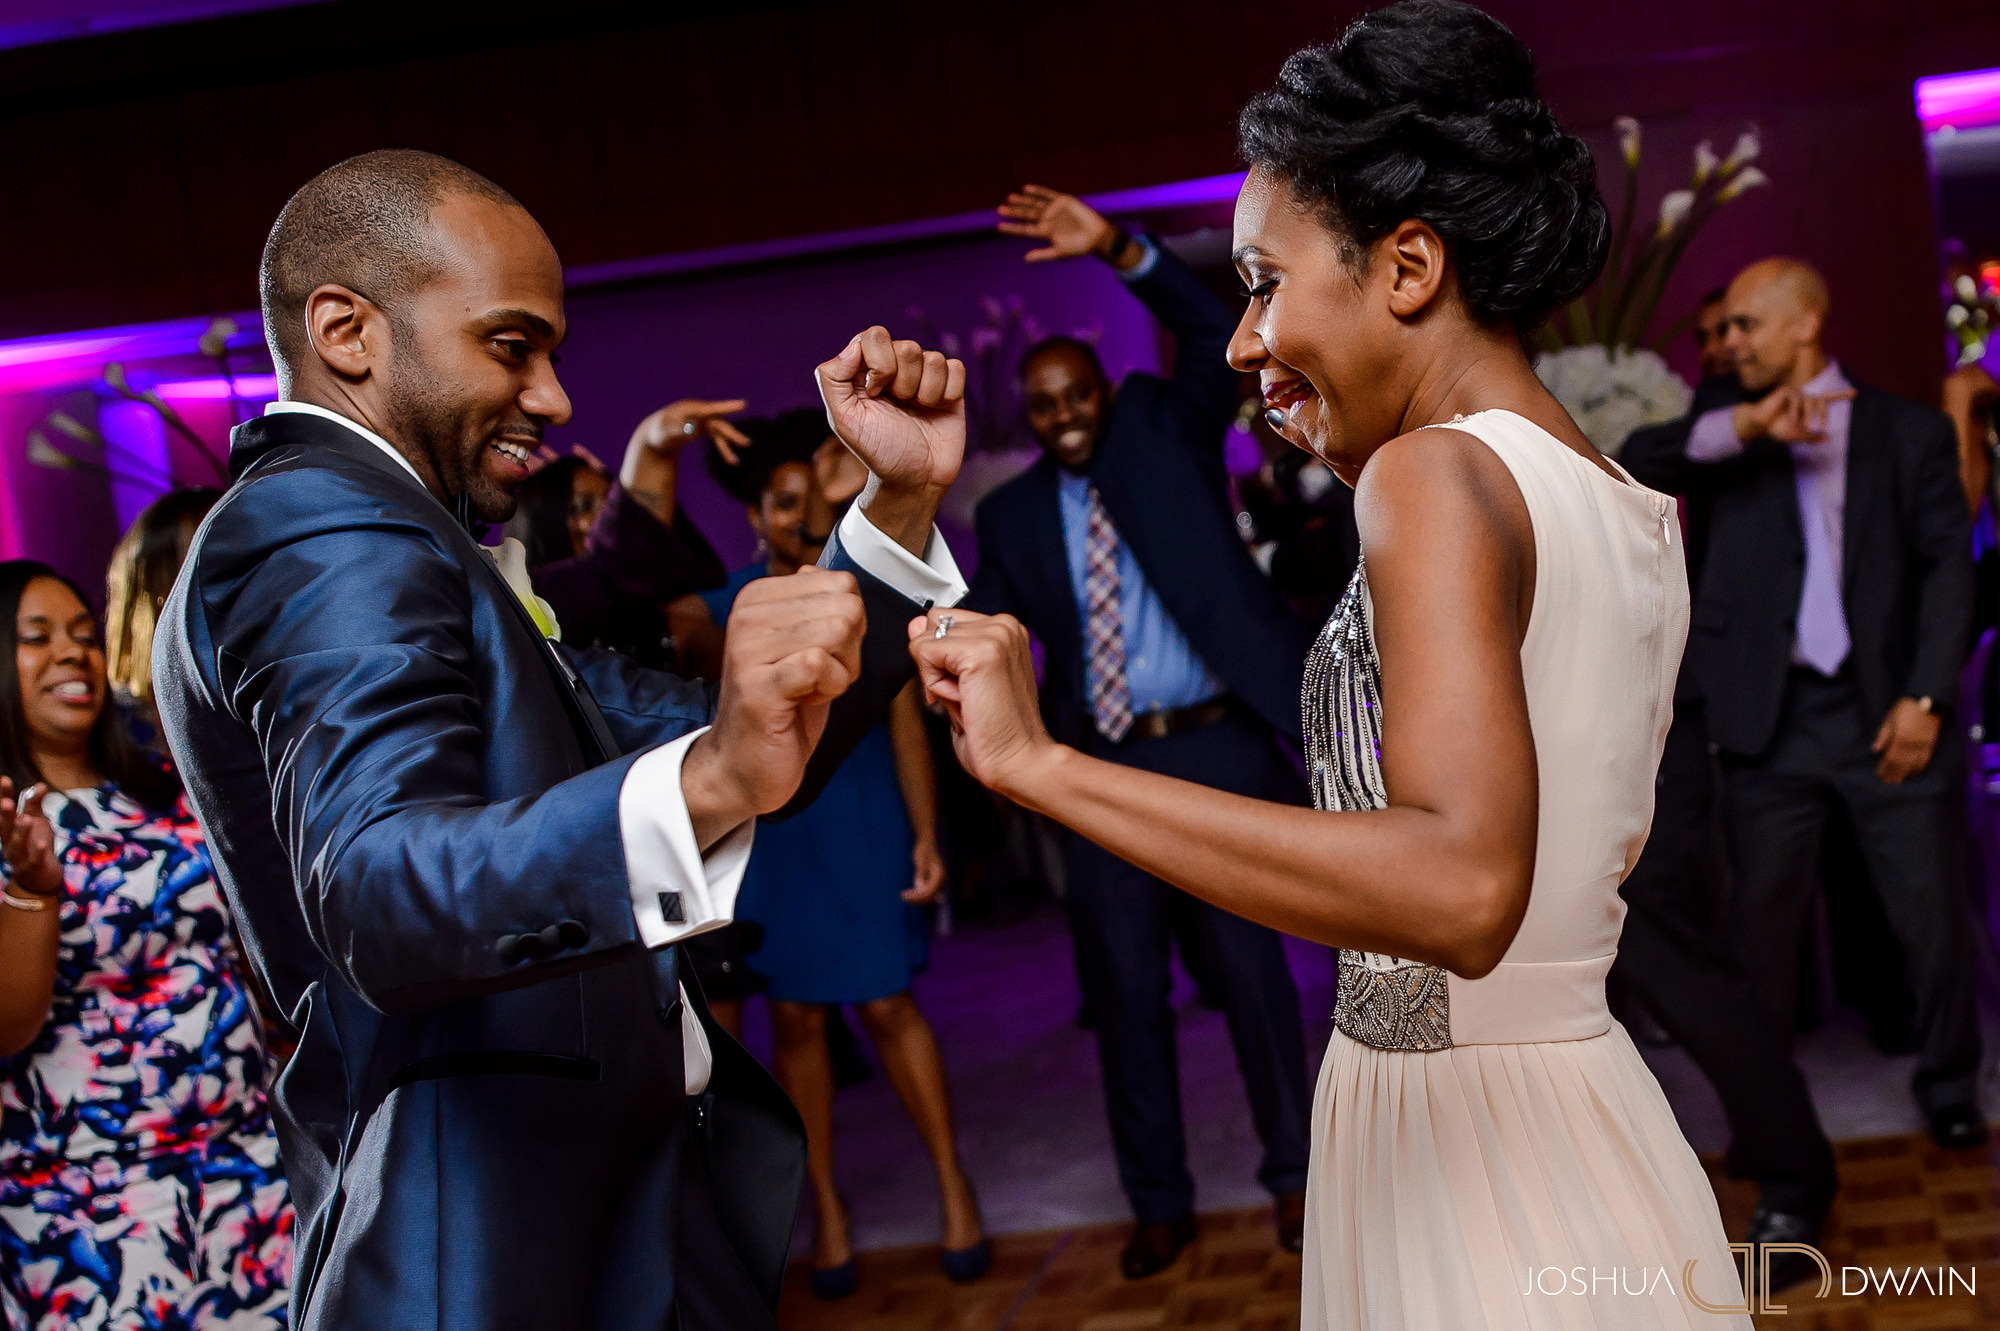 Sharon & Edward's Wedding at the Ritz Carlton in White Plains, New York